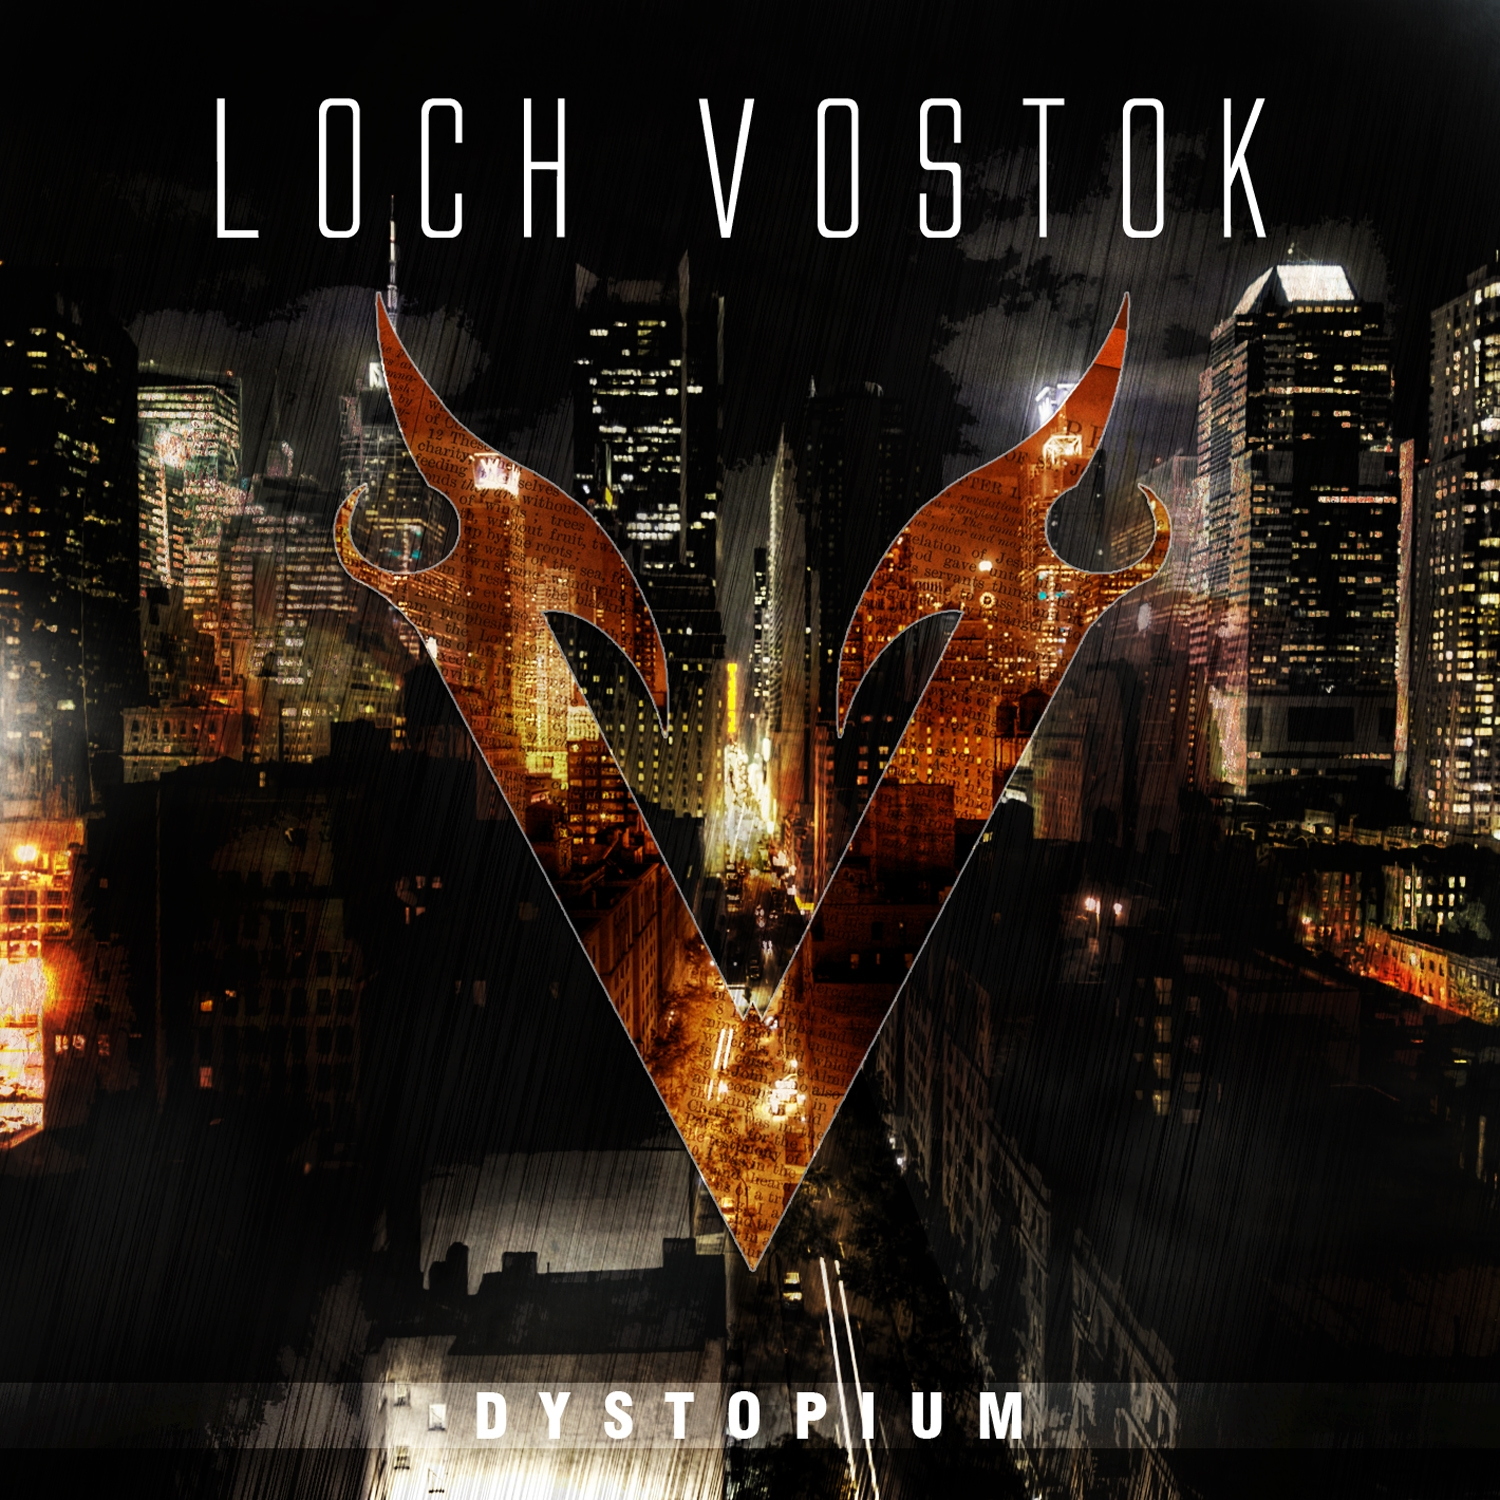 Things You Might Have Missed 2011: Loch Vostok – Dystopium